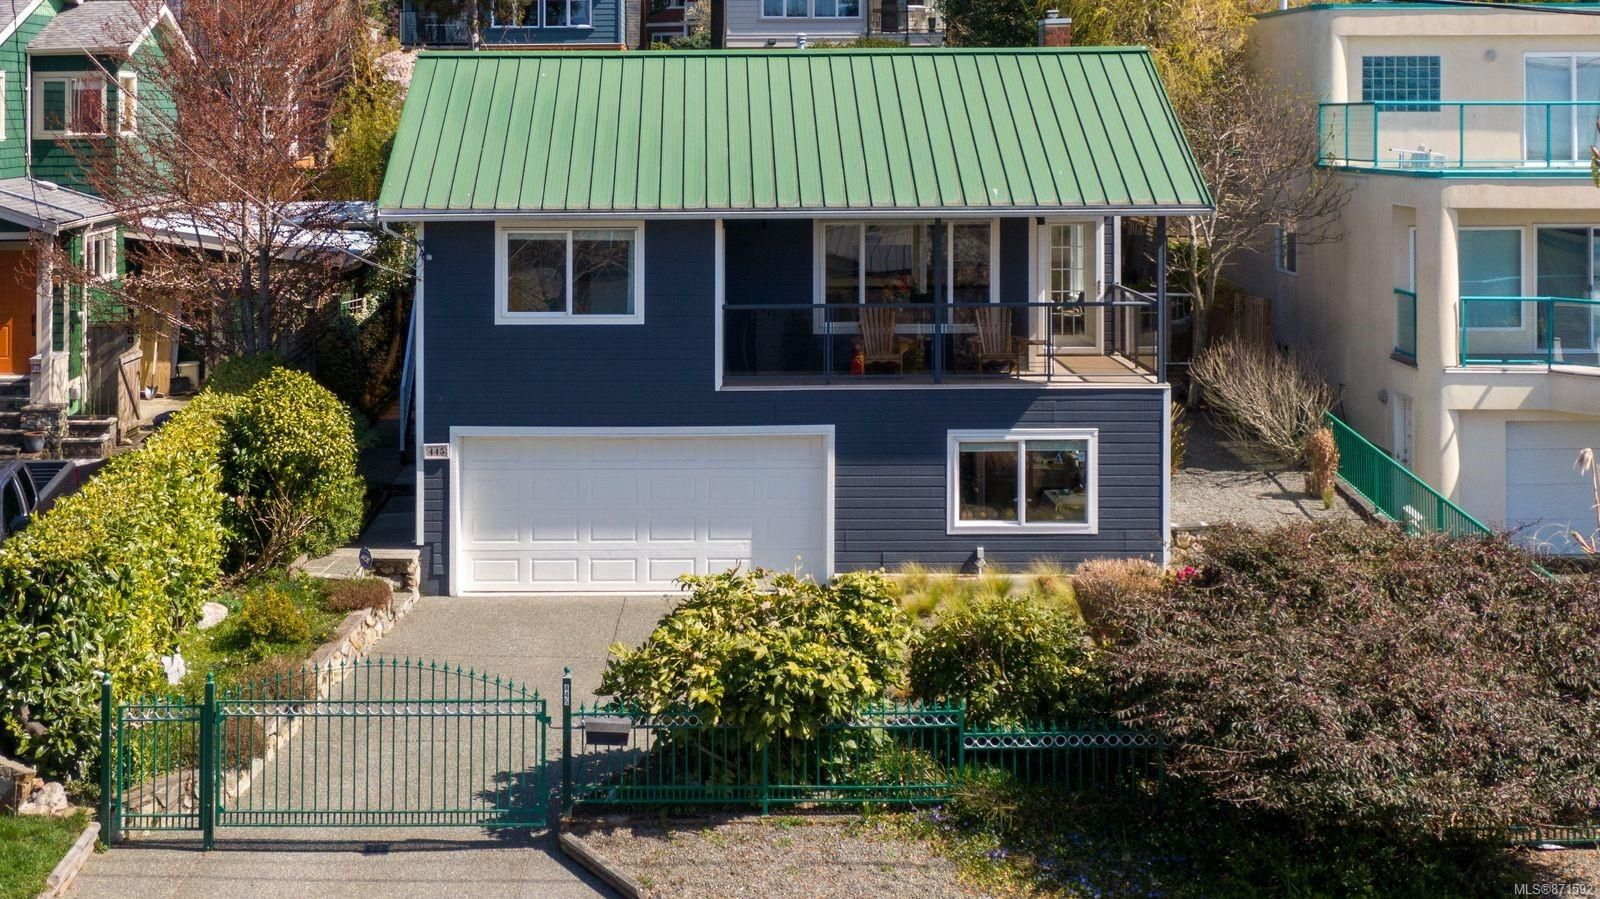 Main Photo: 445 Constance Ave in : Es Saxe Point House for sale (Esquimalt)  : MLS®# 871592